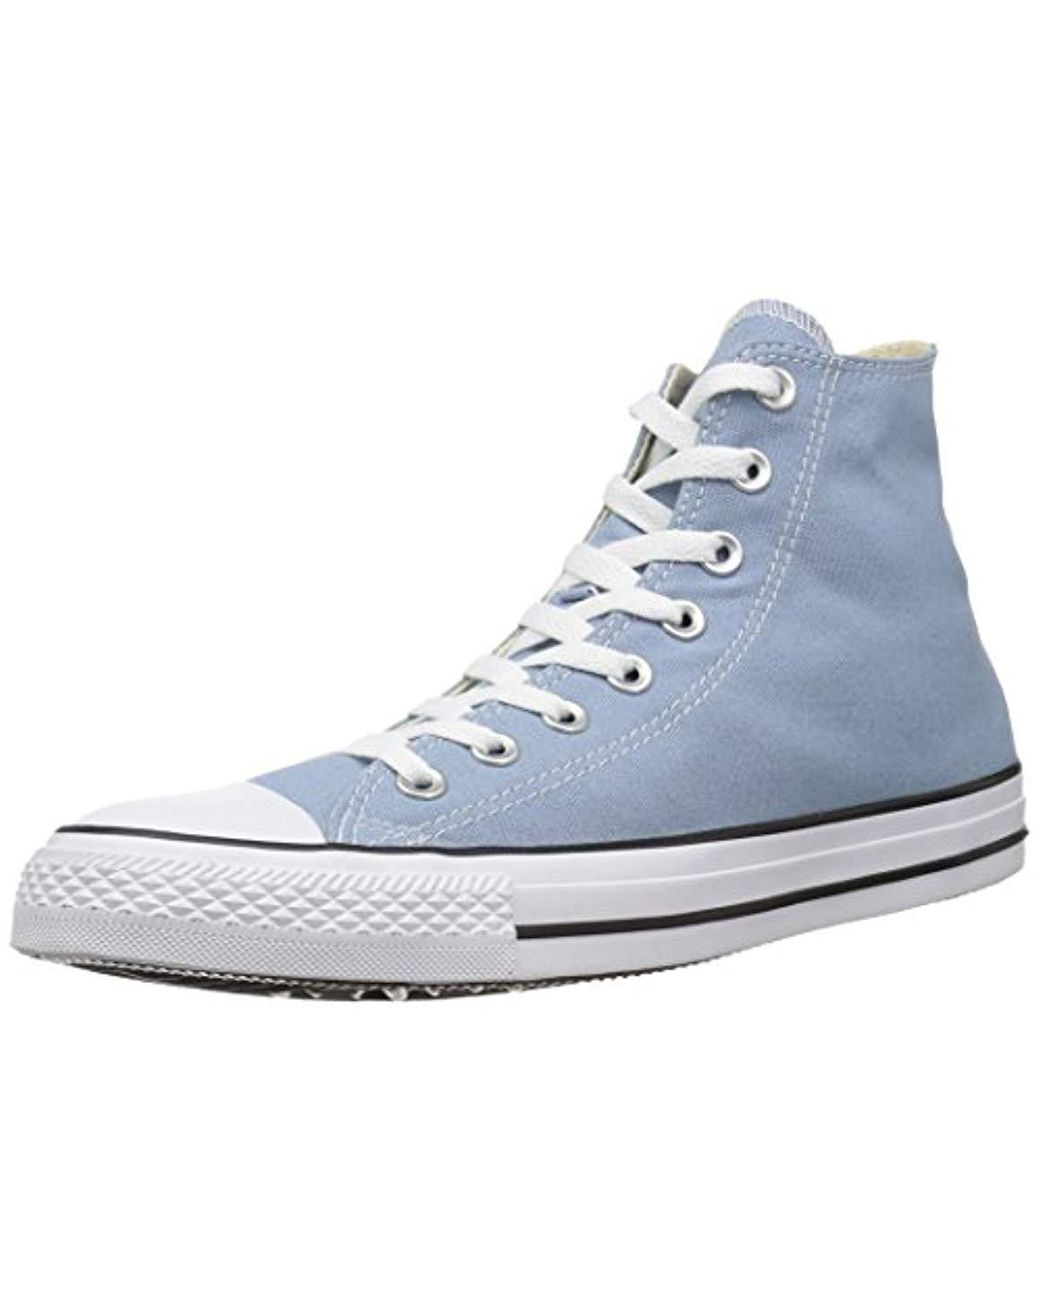 5fa674709749 Lyst - Converse Unisex Chuck Taylor As Specialty Hi Lace-up in Blue ...